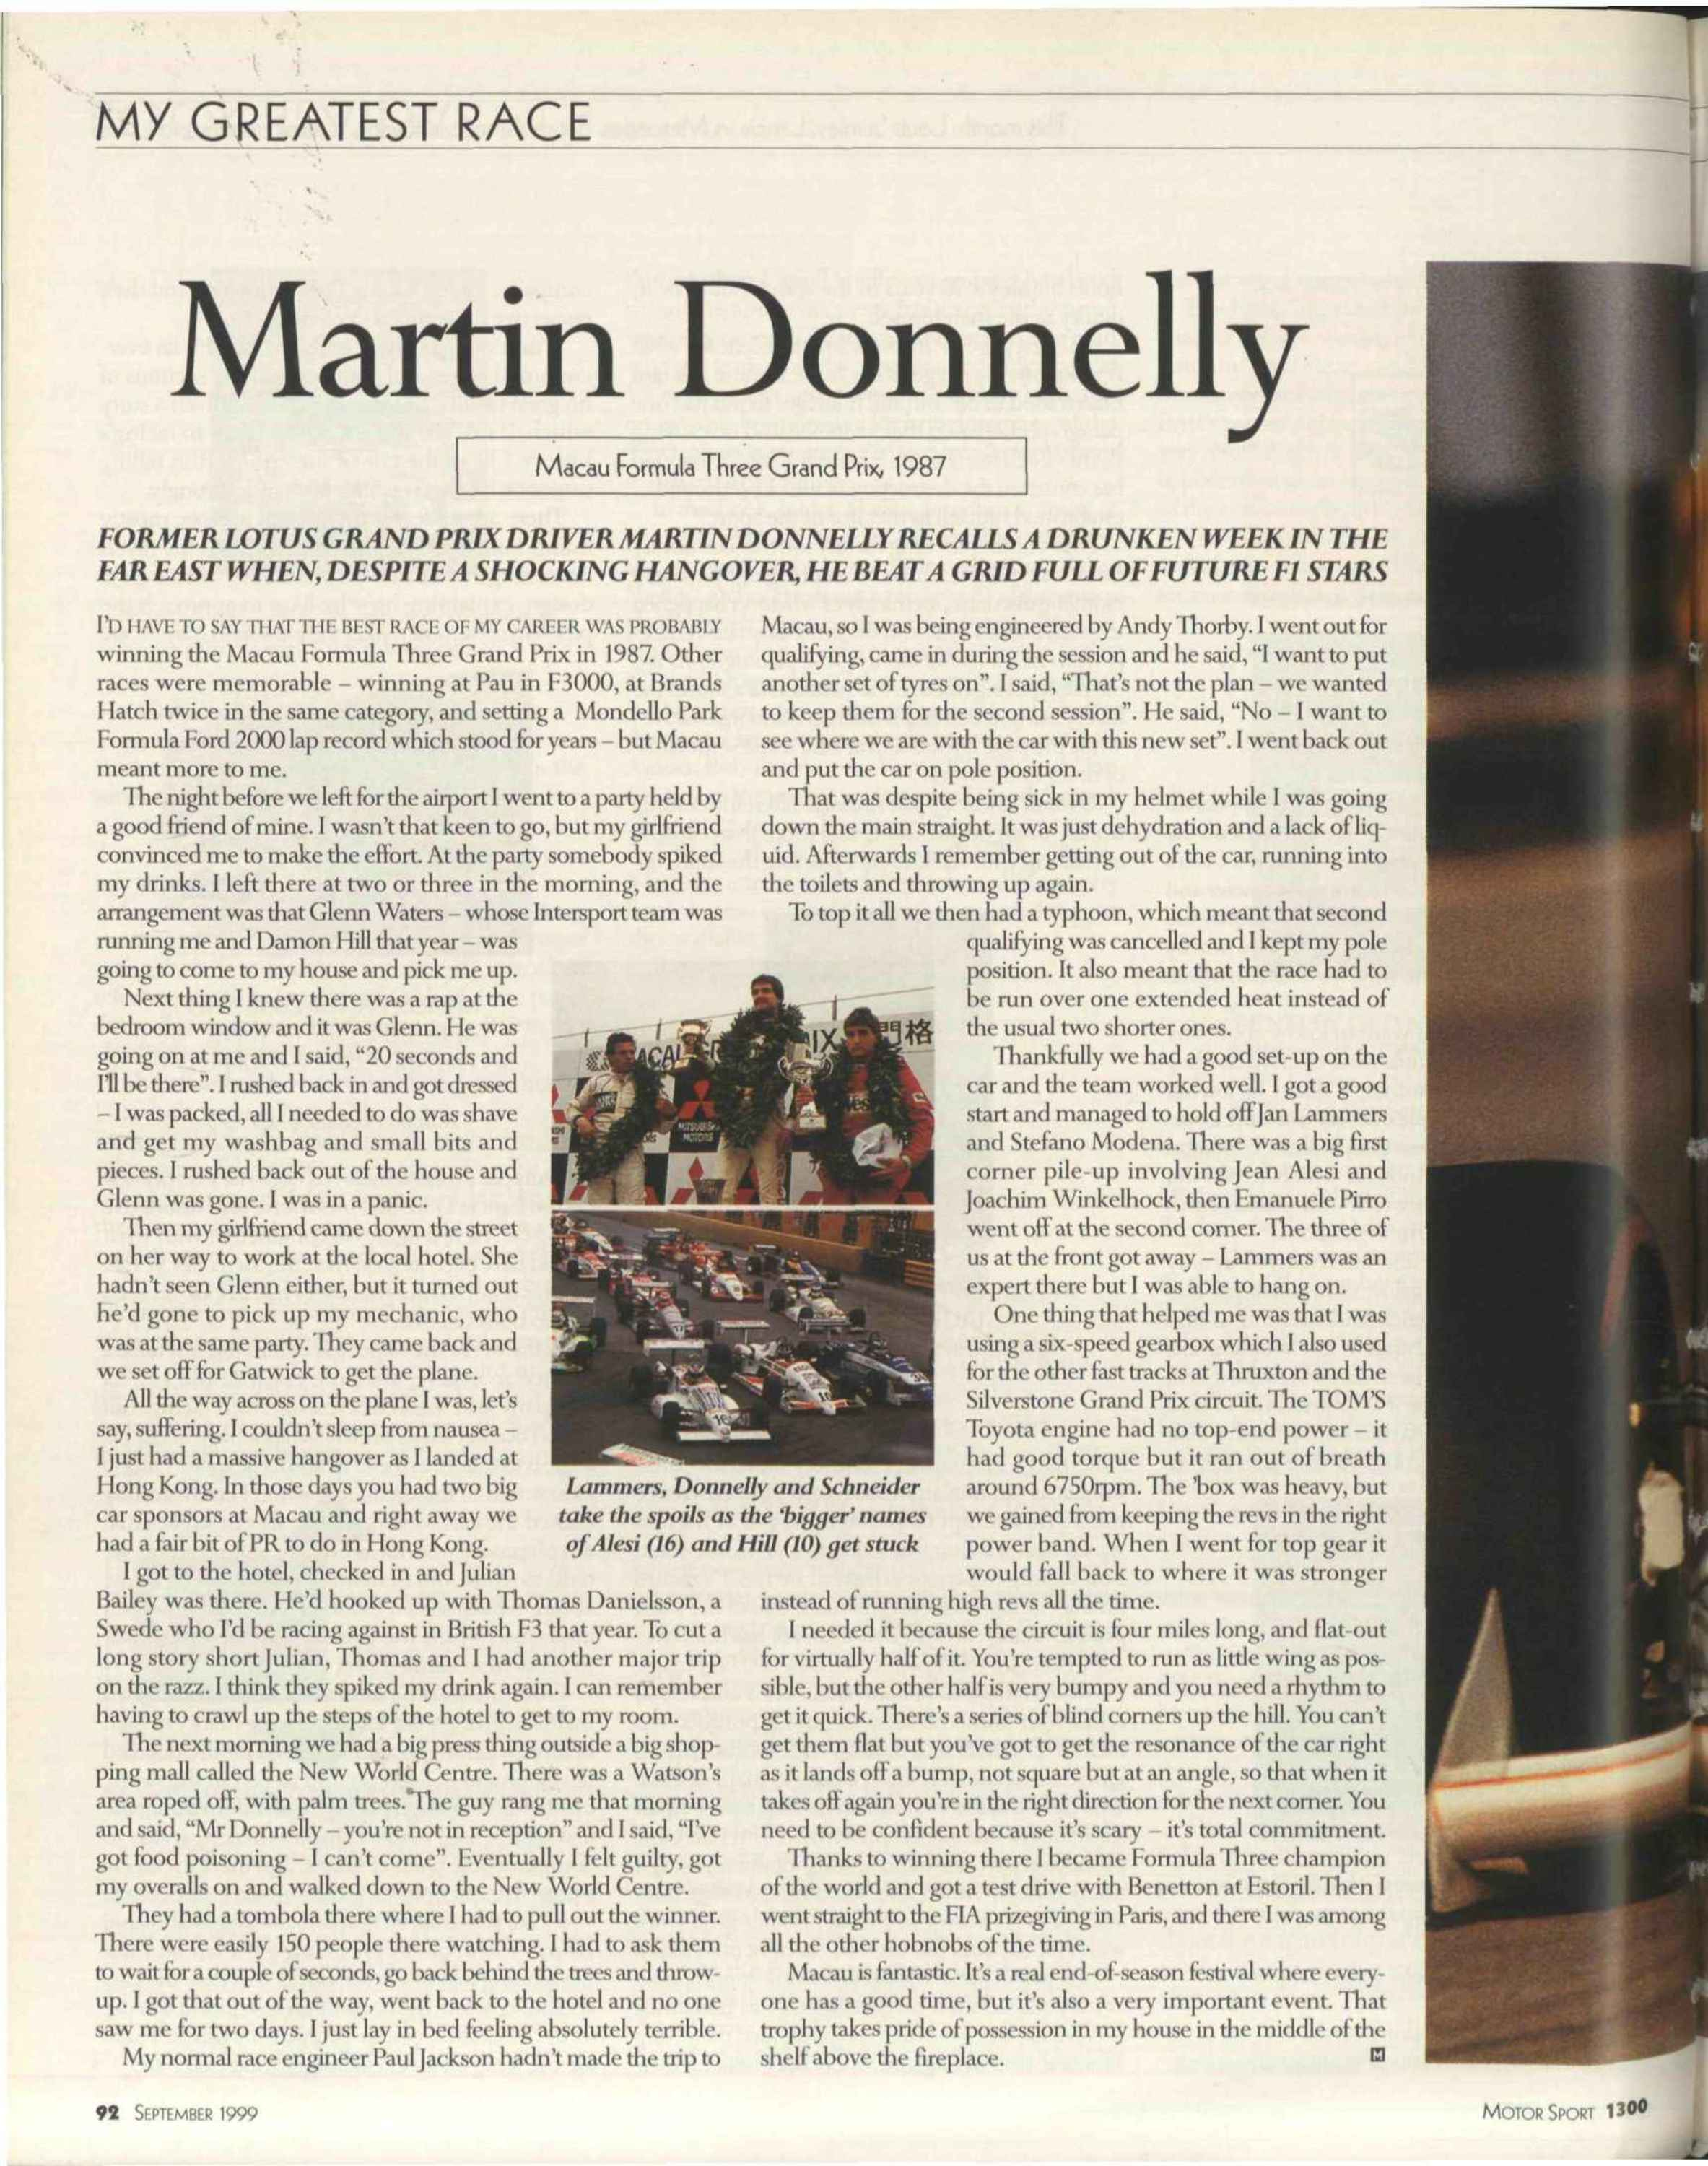 martin donnelly image